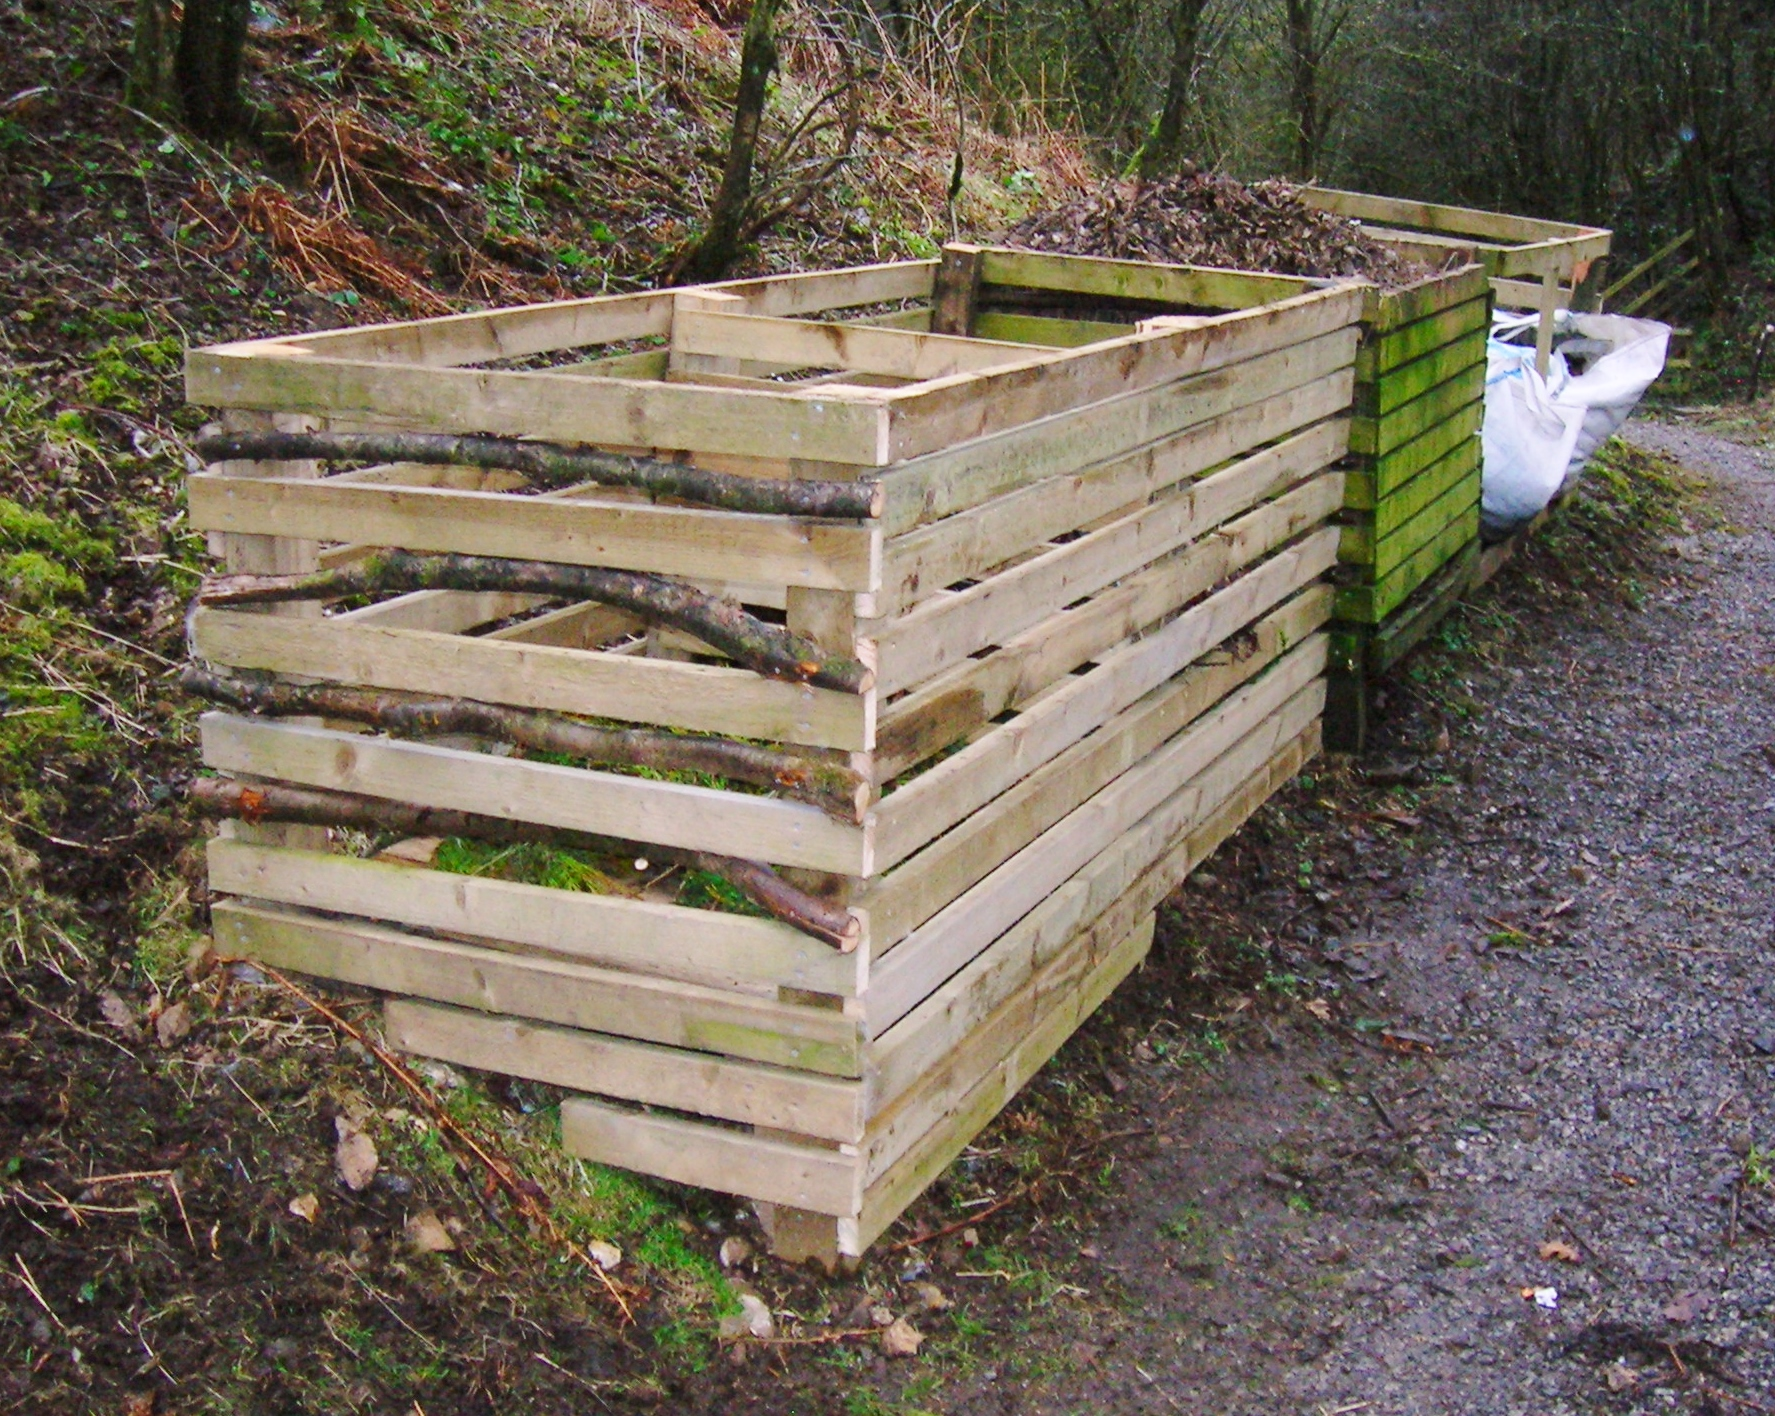 filecompost bins vale grovejpg